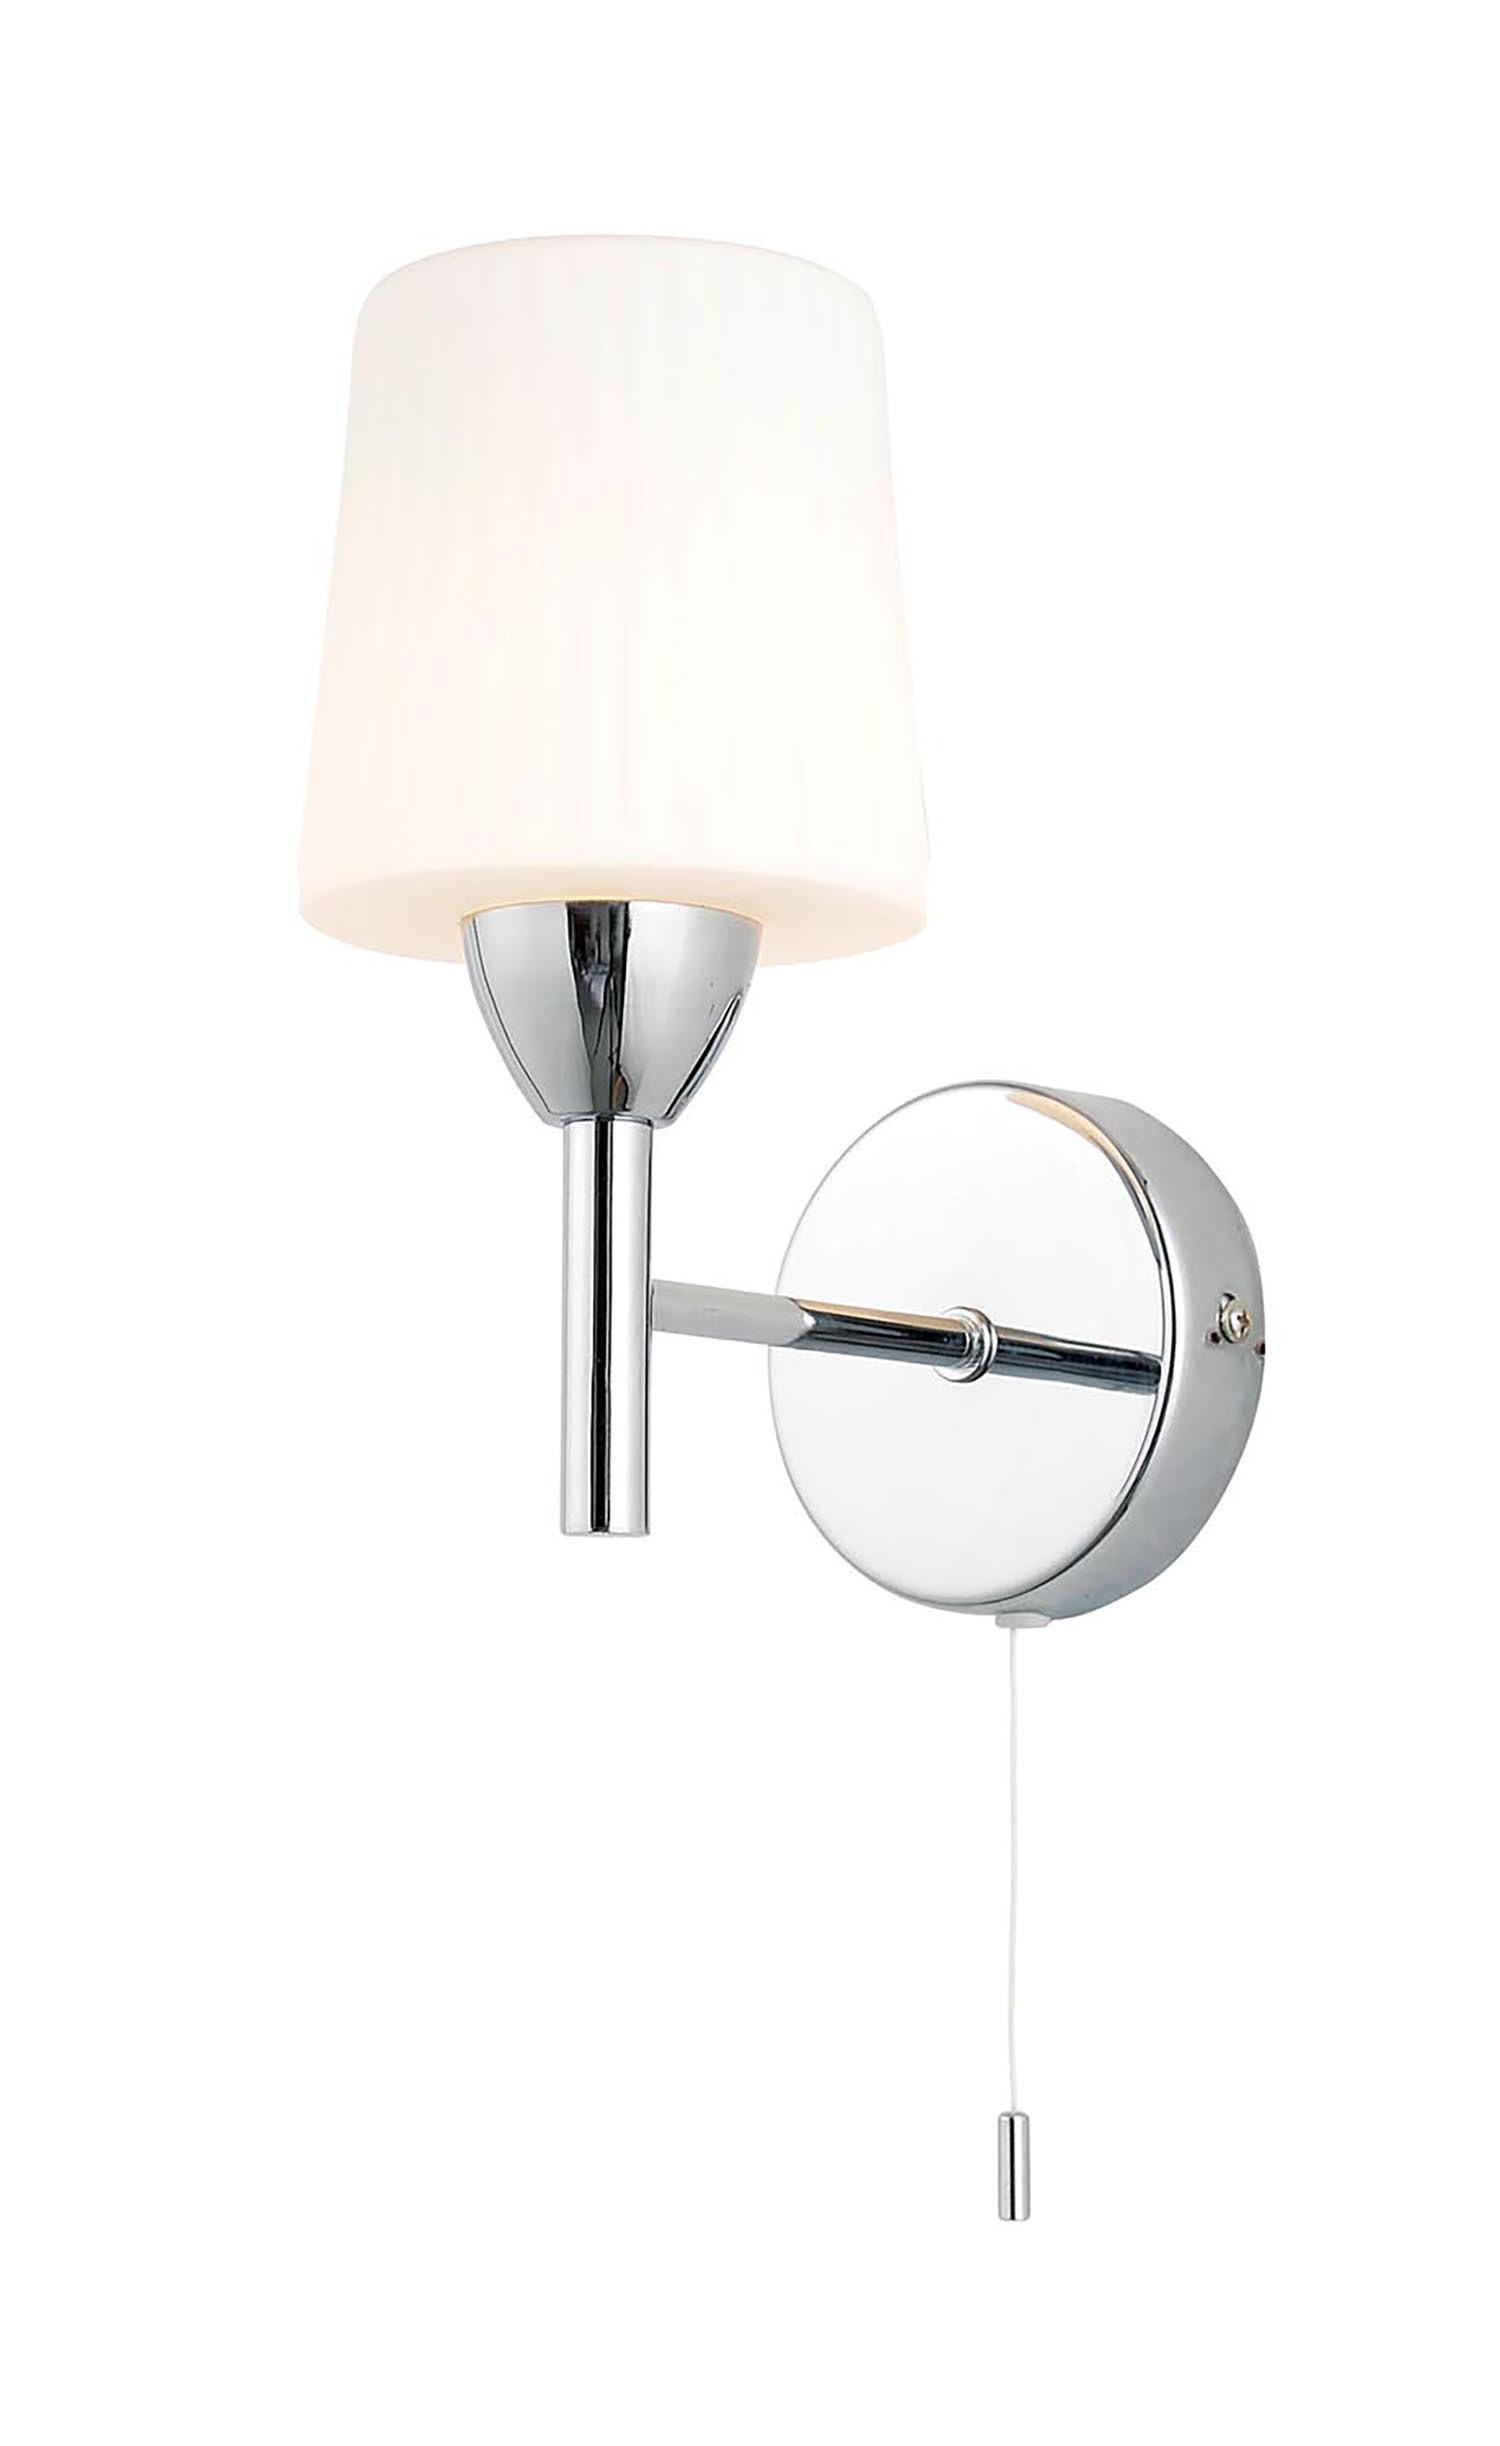 Aqua Wall Light with Pull Chord